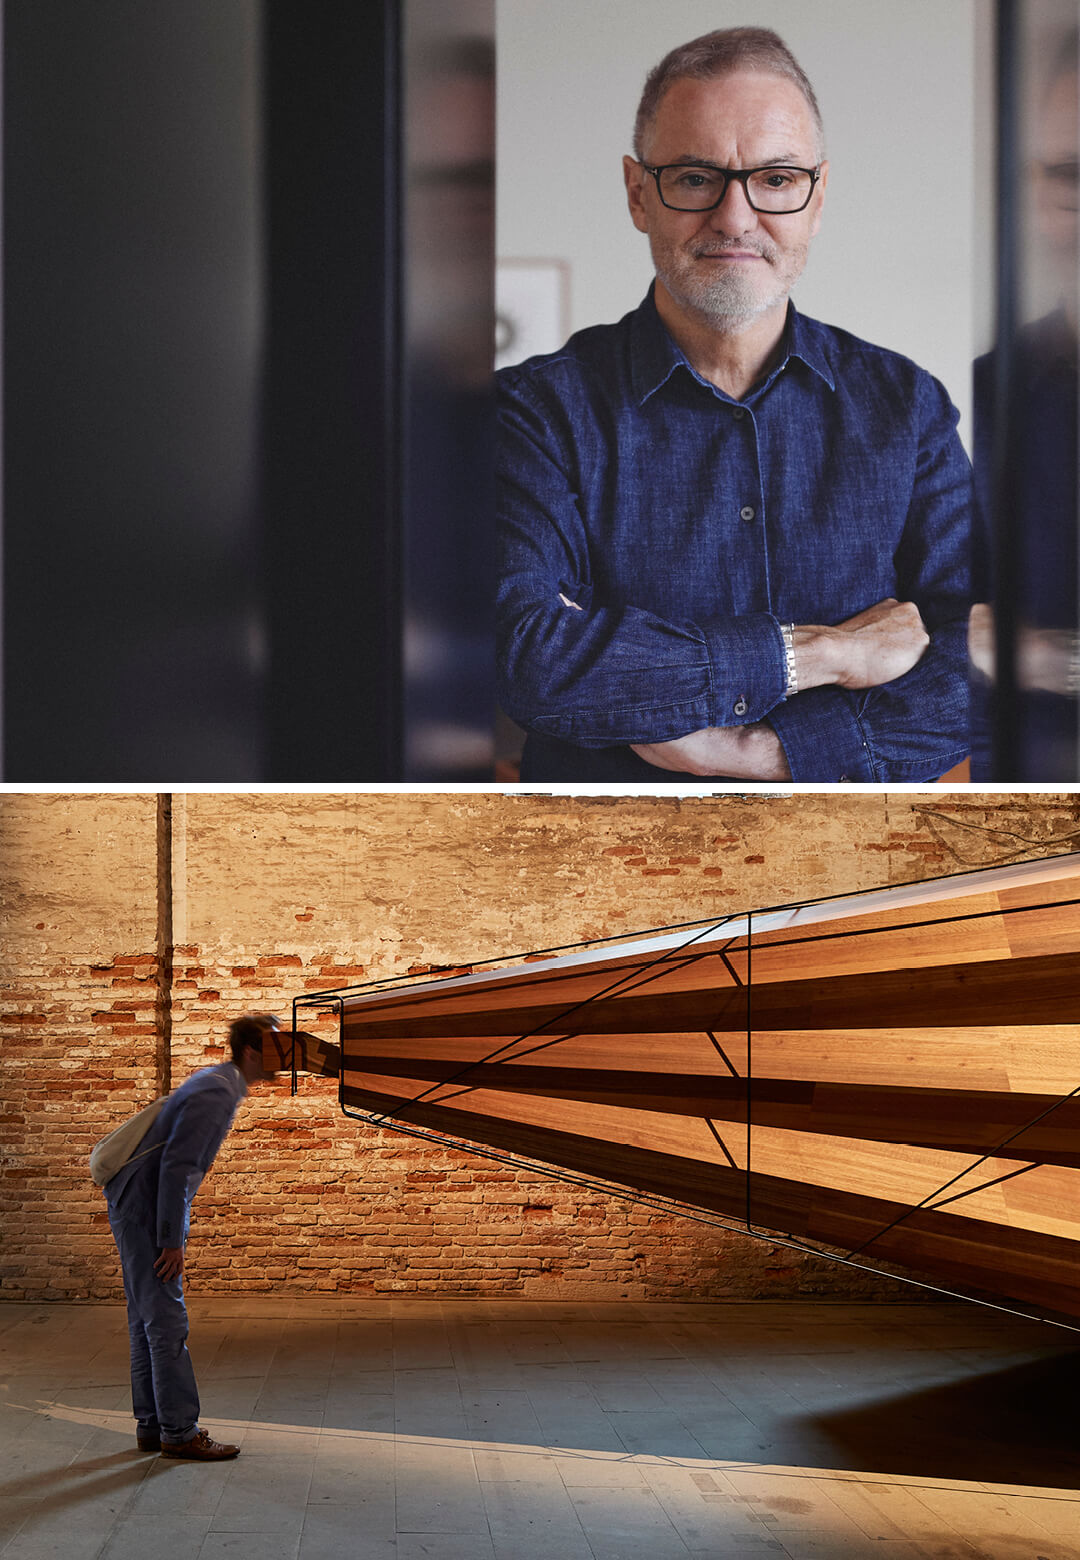 Left: 'Somewhere Other' - John Wardle Architects' installation at the Arsenale Exhibition for the 2018 Biennale Architettura, Venice; Right: John Wardle | Somewhere Other | John Wardle Architects | STIRworld